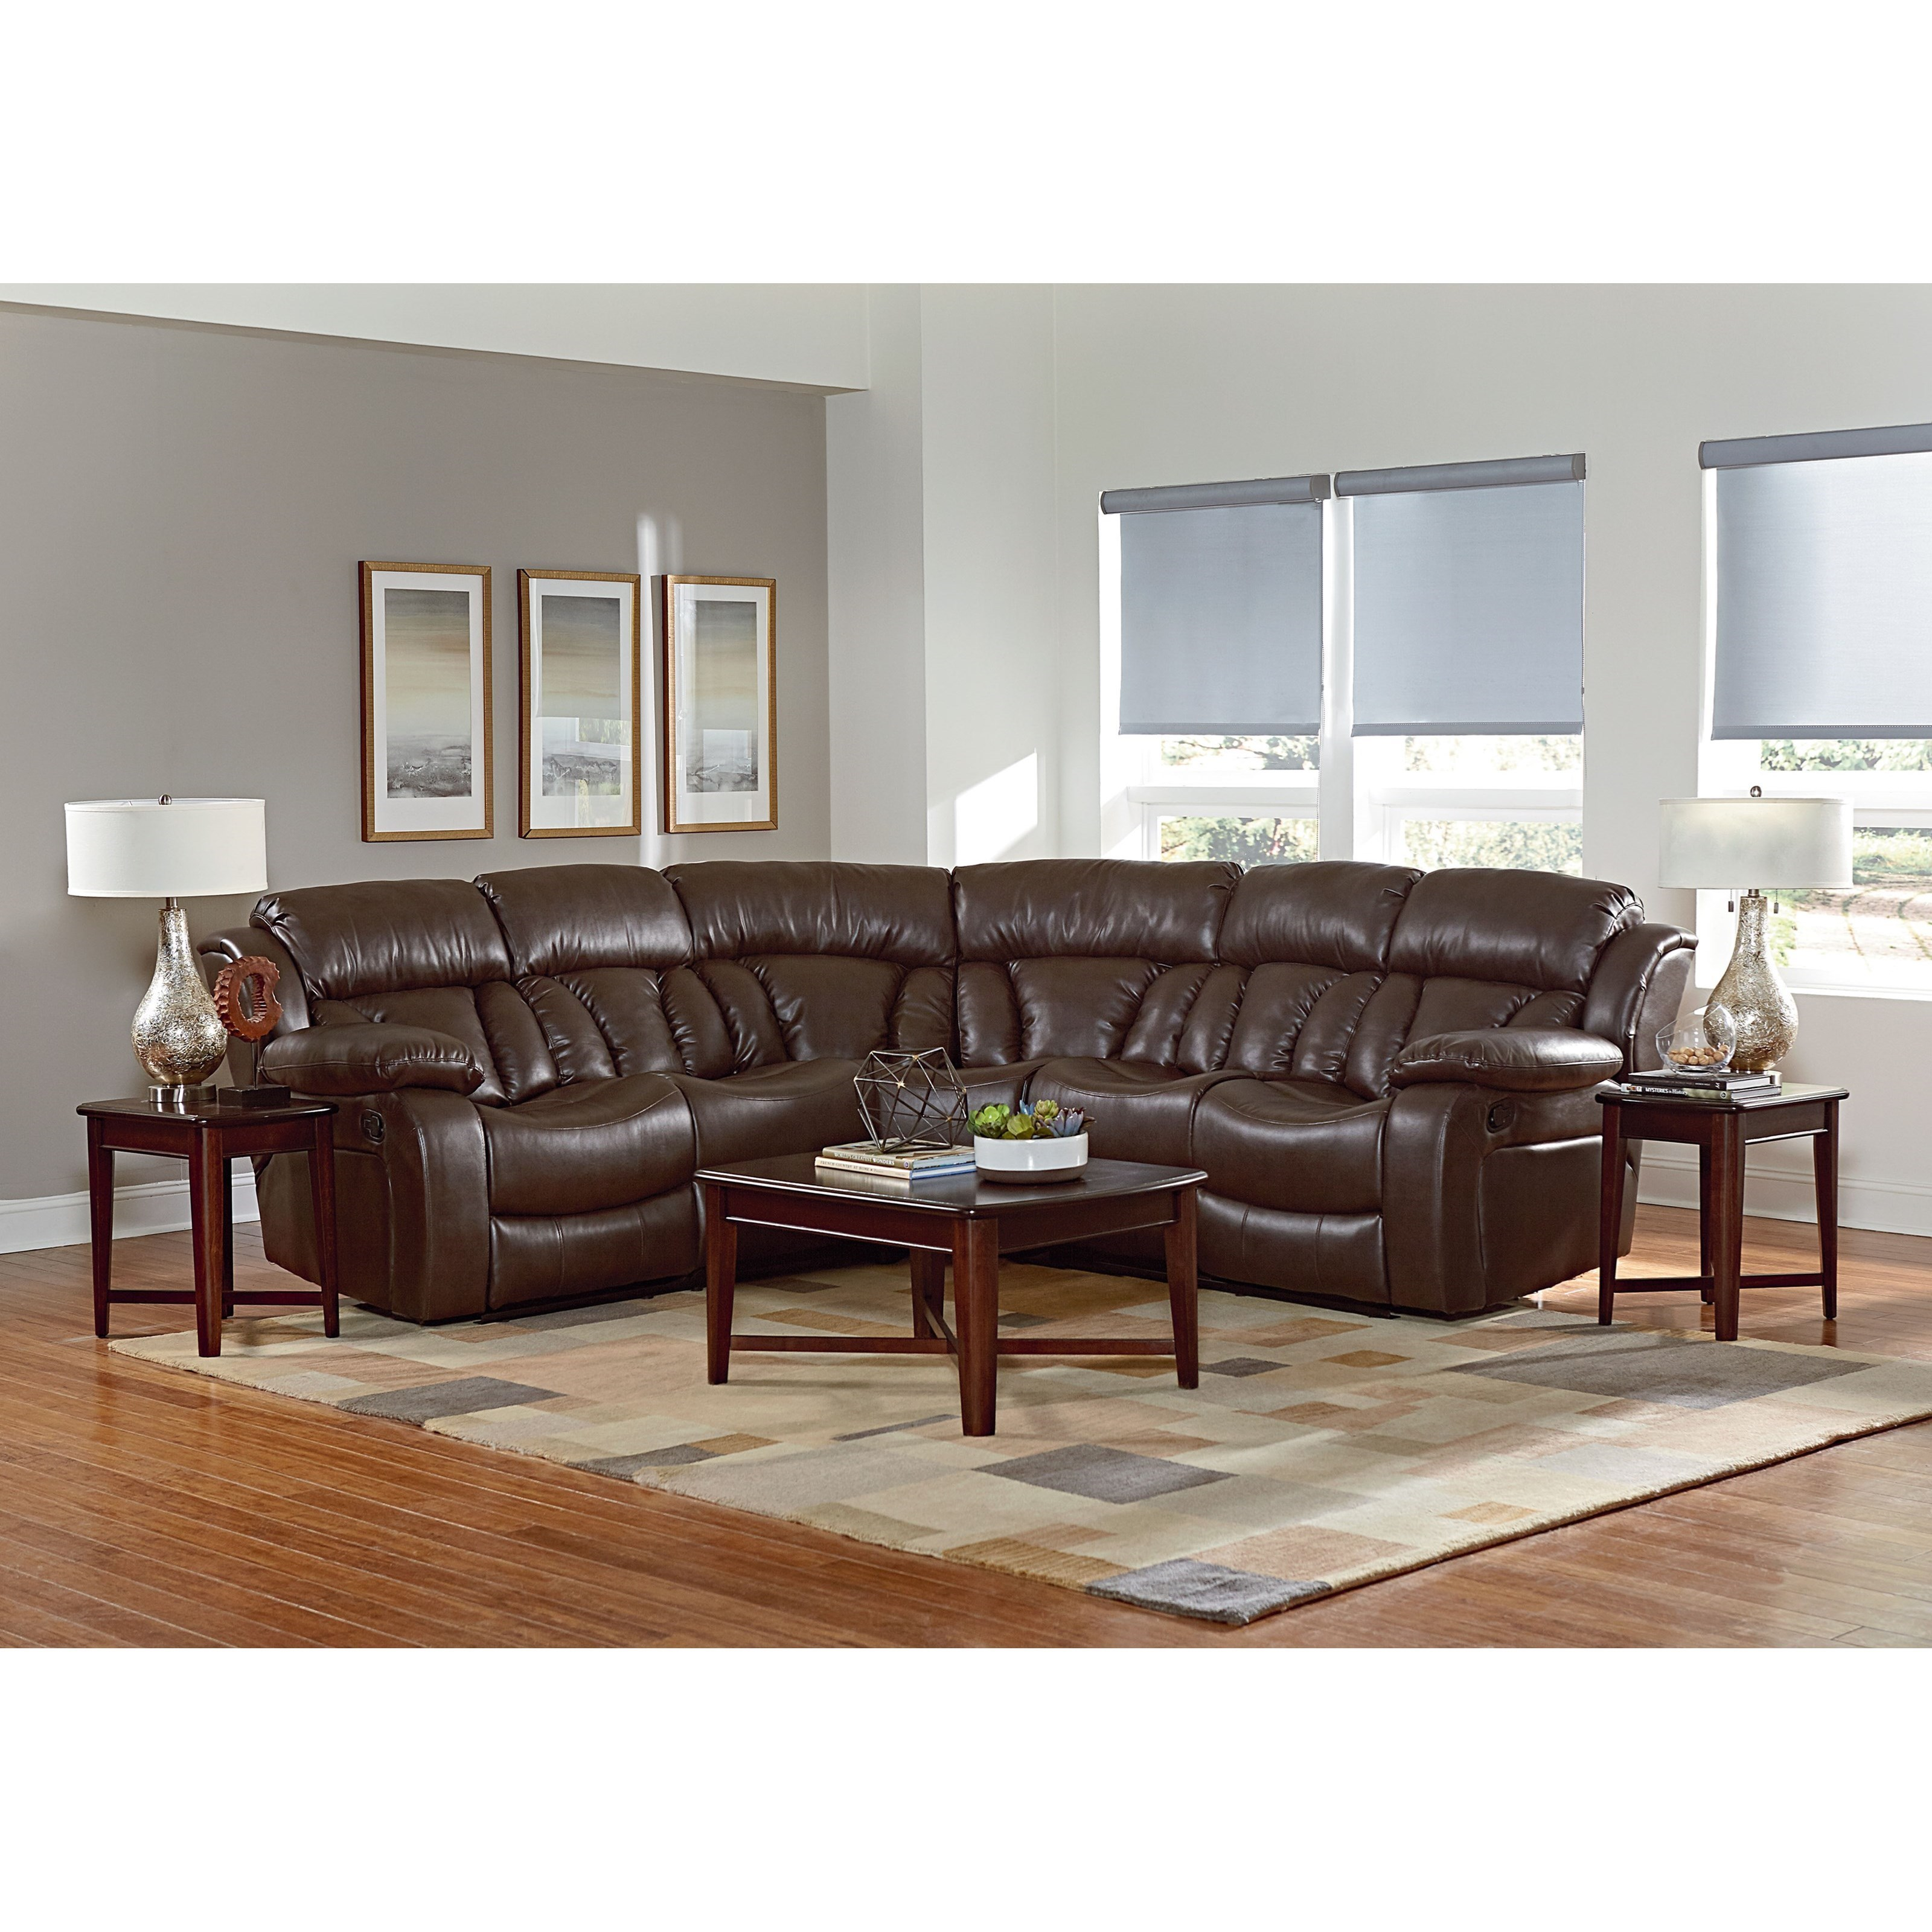 Charmant Standard Furniture North Shore Reclining Sectional Sofa With Pillow Arms